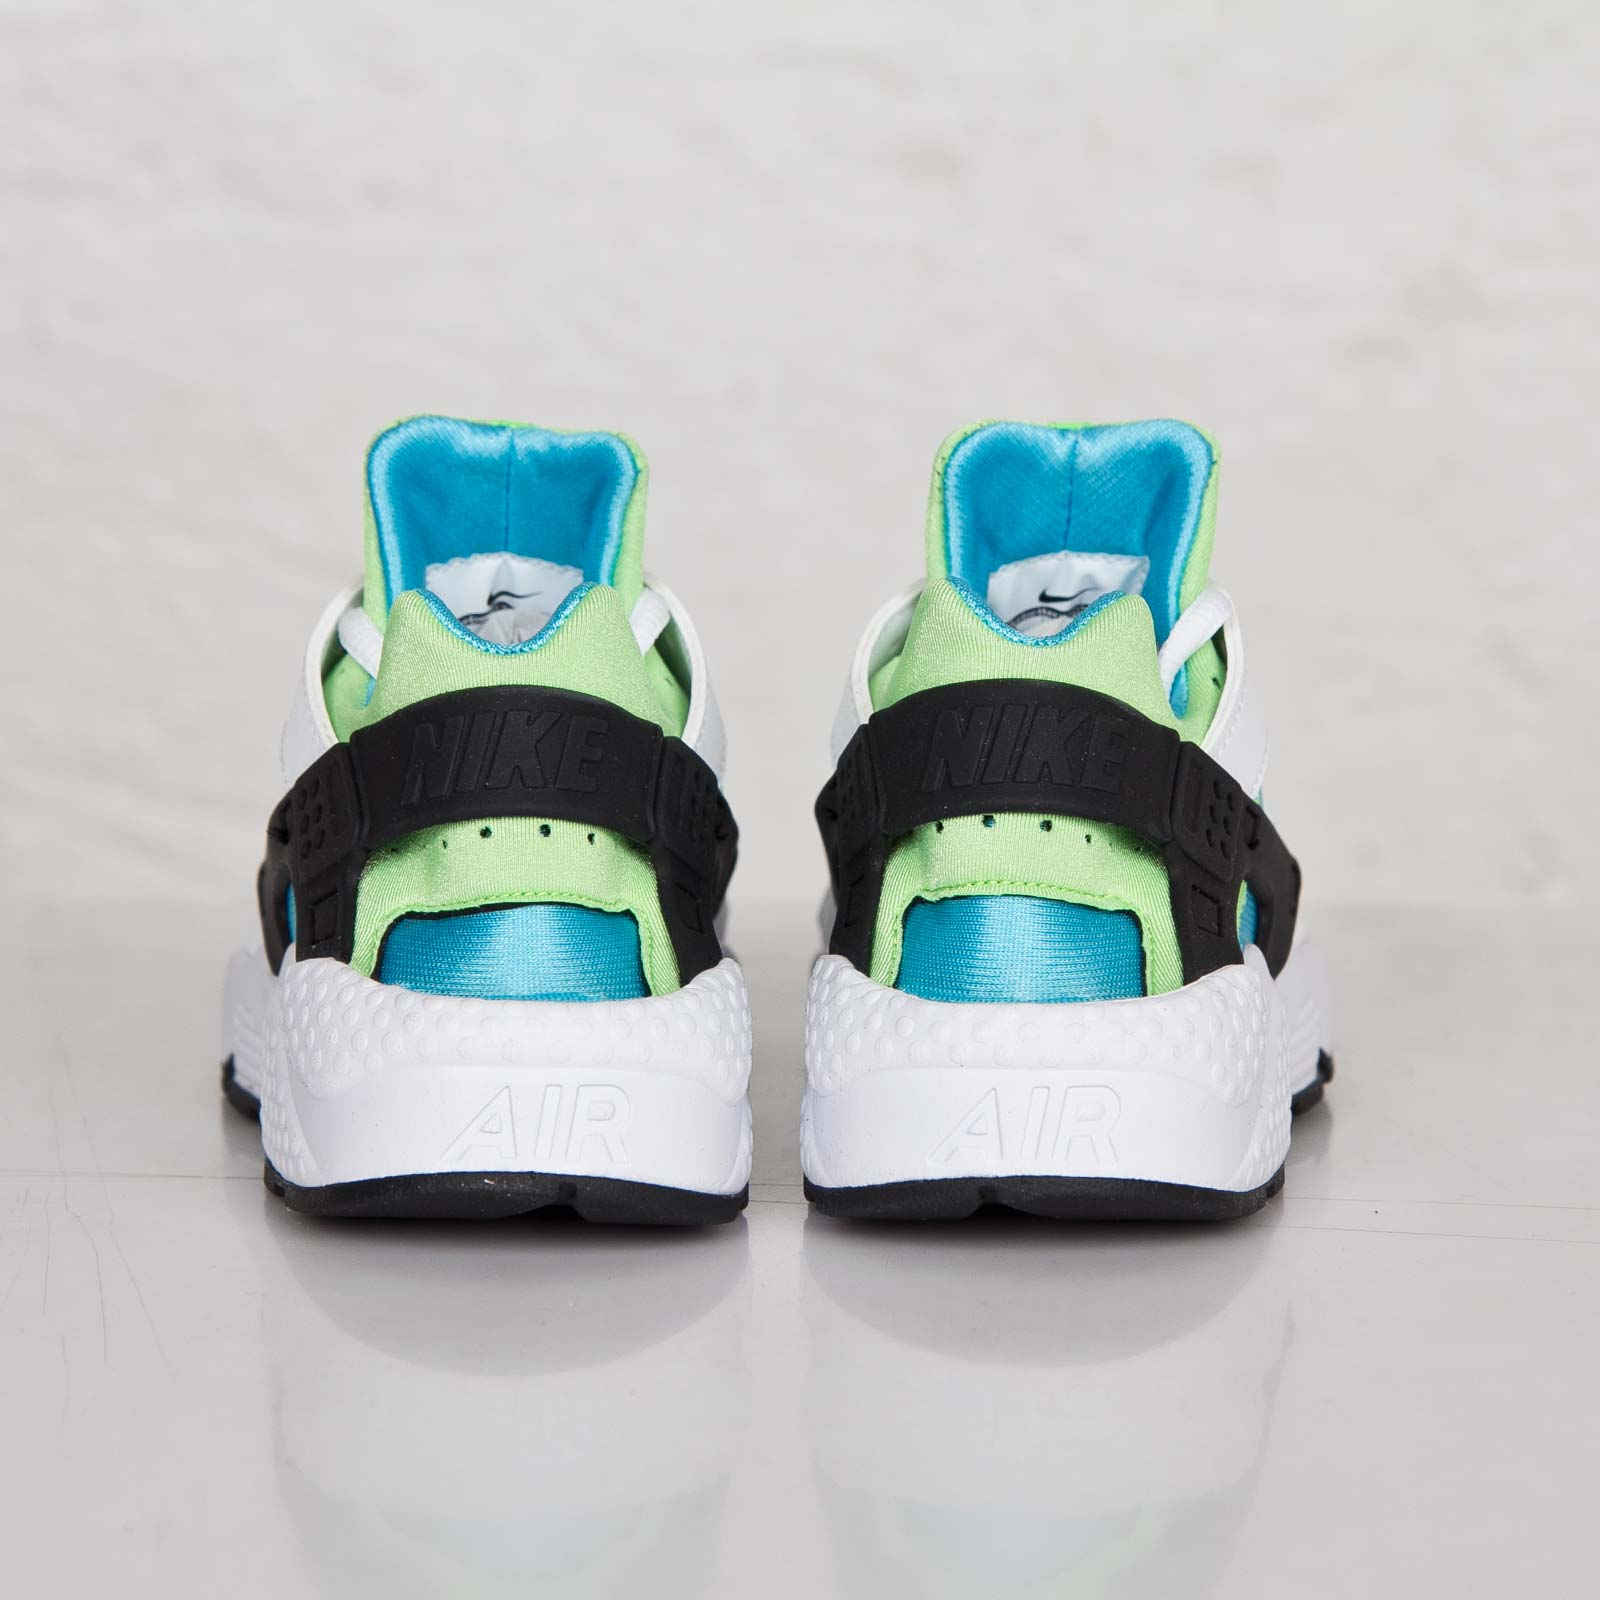 official store new release size 40 Nike Wmns Air Huarache Run - 634835-100 - Sneakersnstuff ...